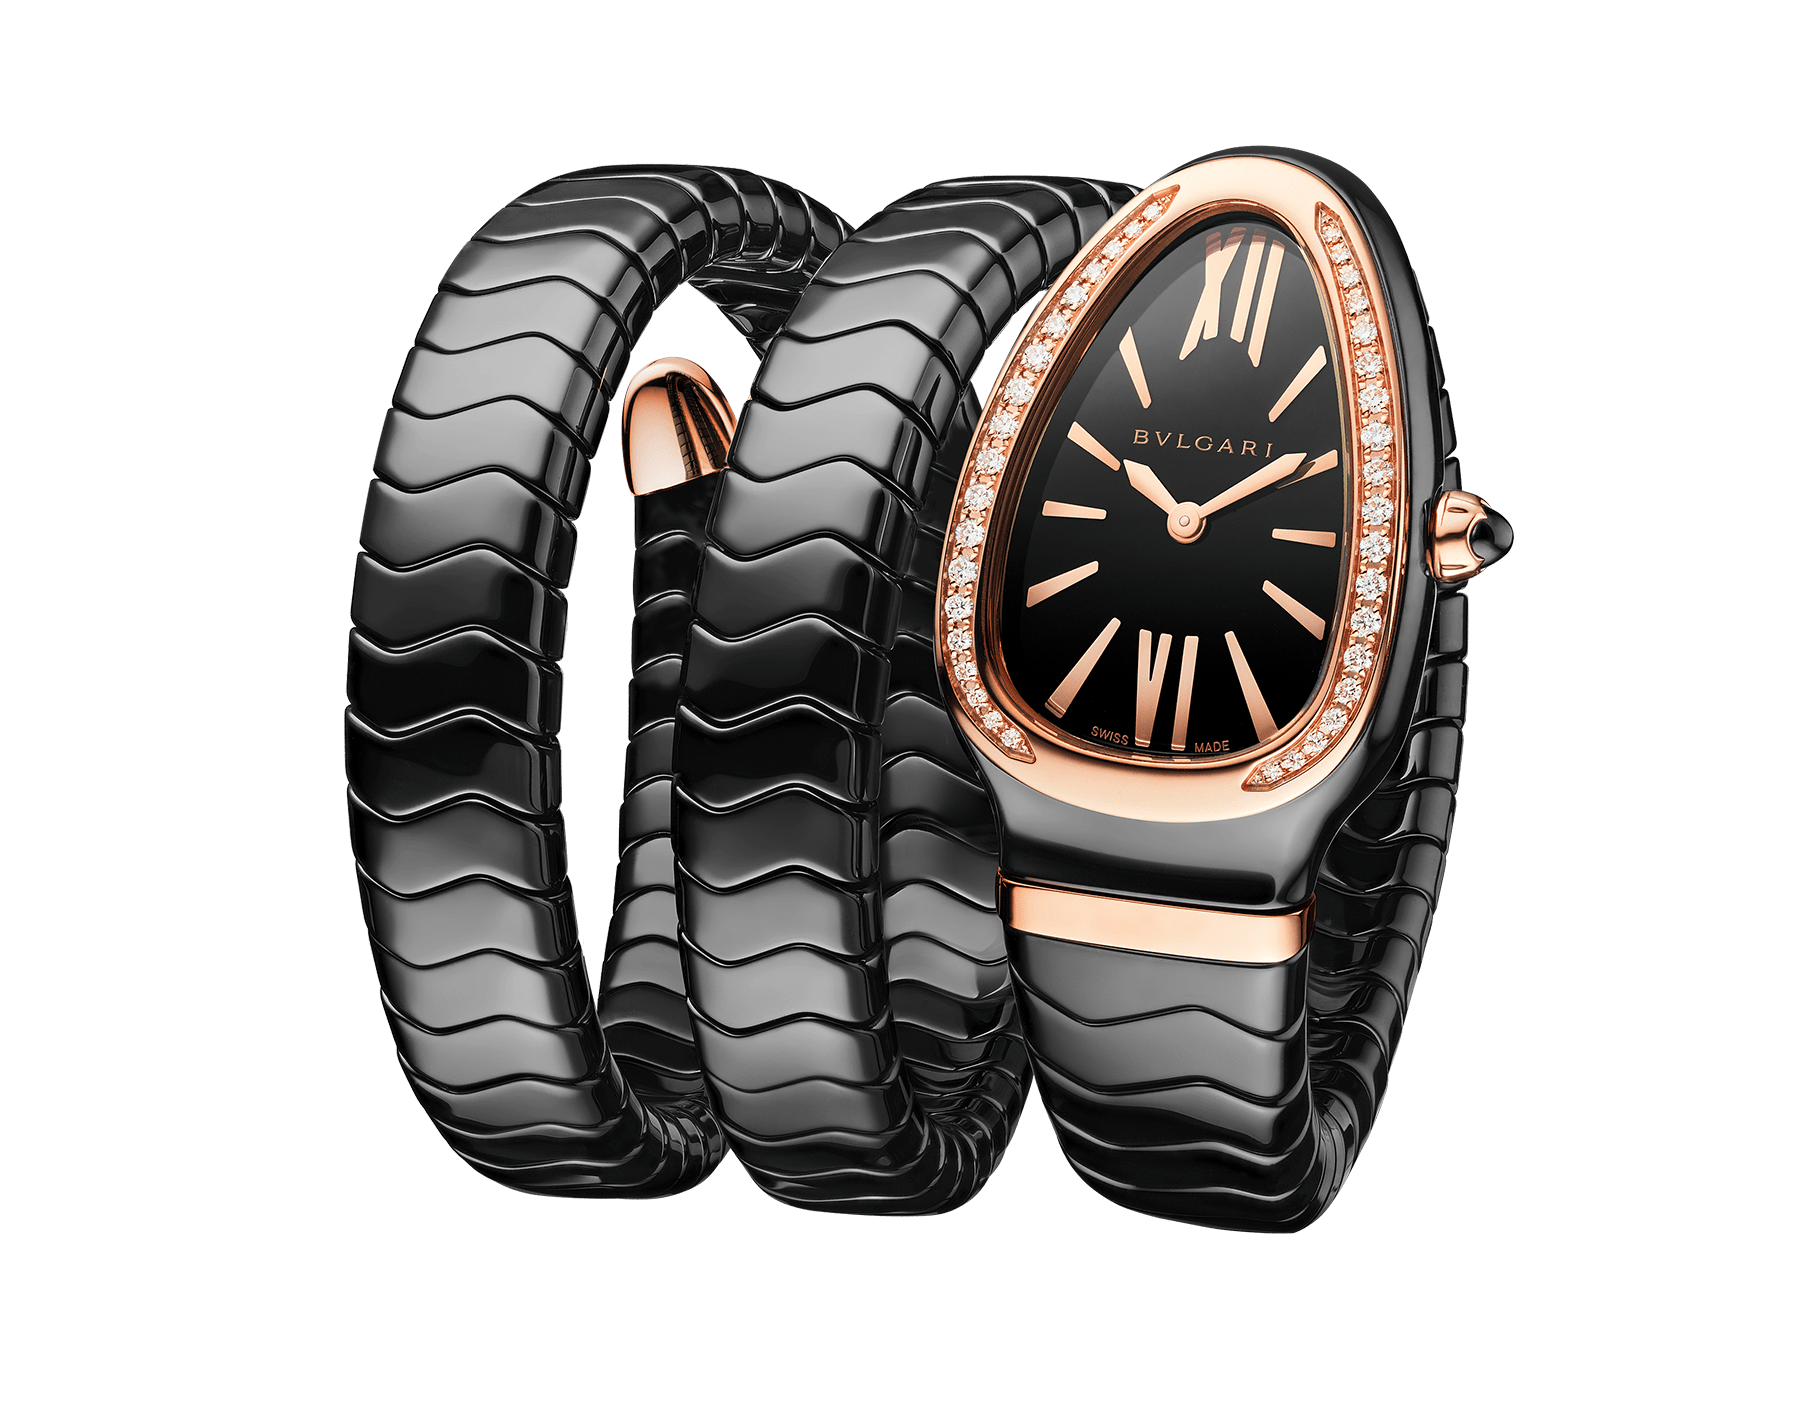 Serpenti Spiga watch with black ceramic case, 18 kt rose gold bezel set with diamonds, black lacquered polished dial and double spiral bracelet in black ceramic and 18 kt rose gold elements. 102885 image 1